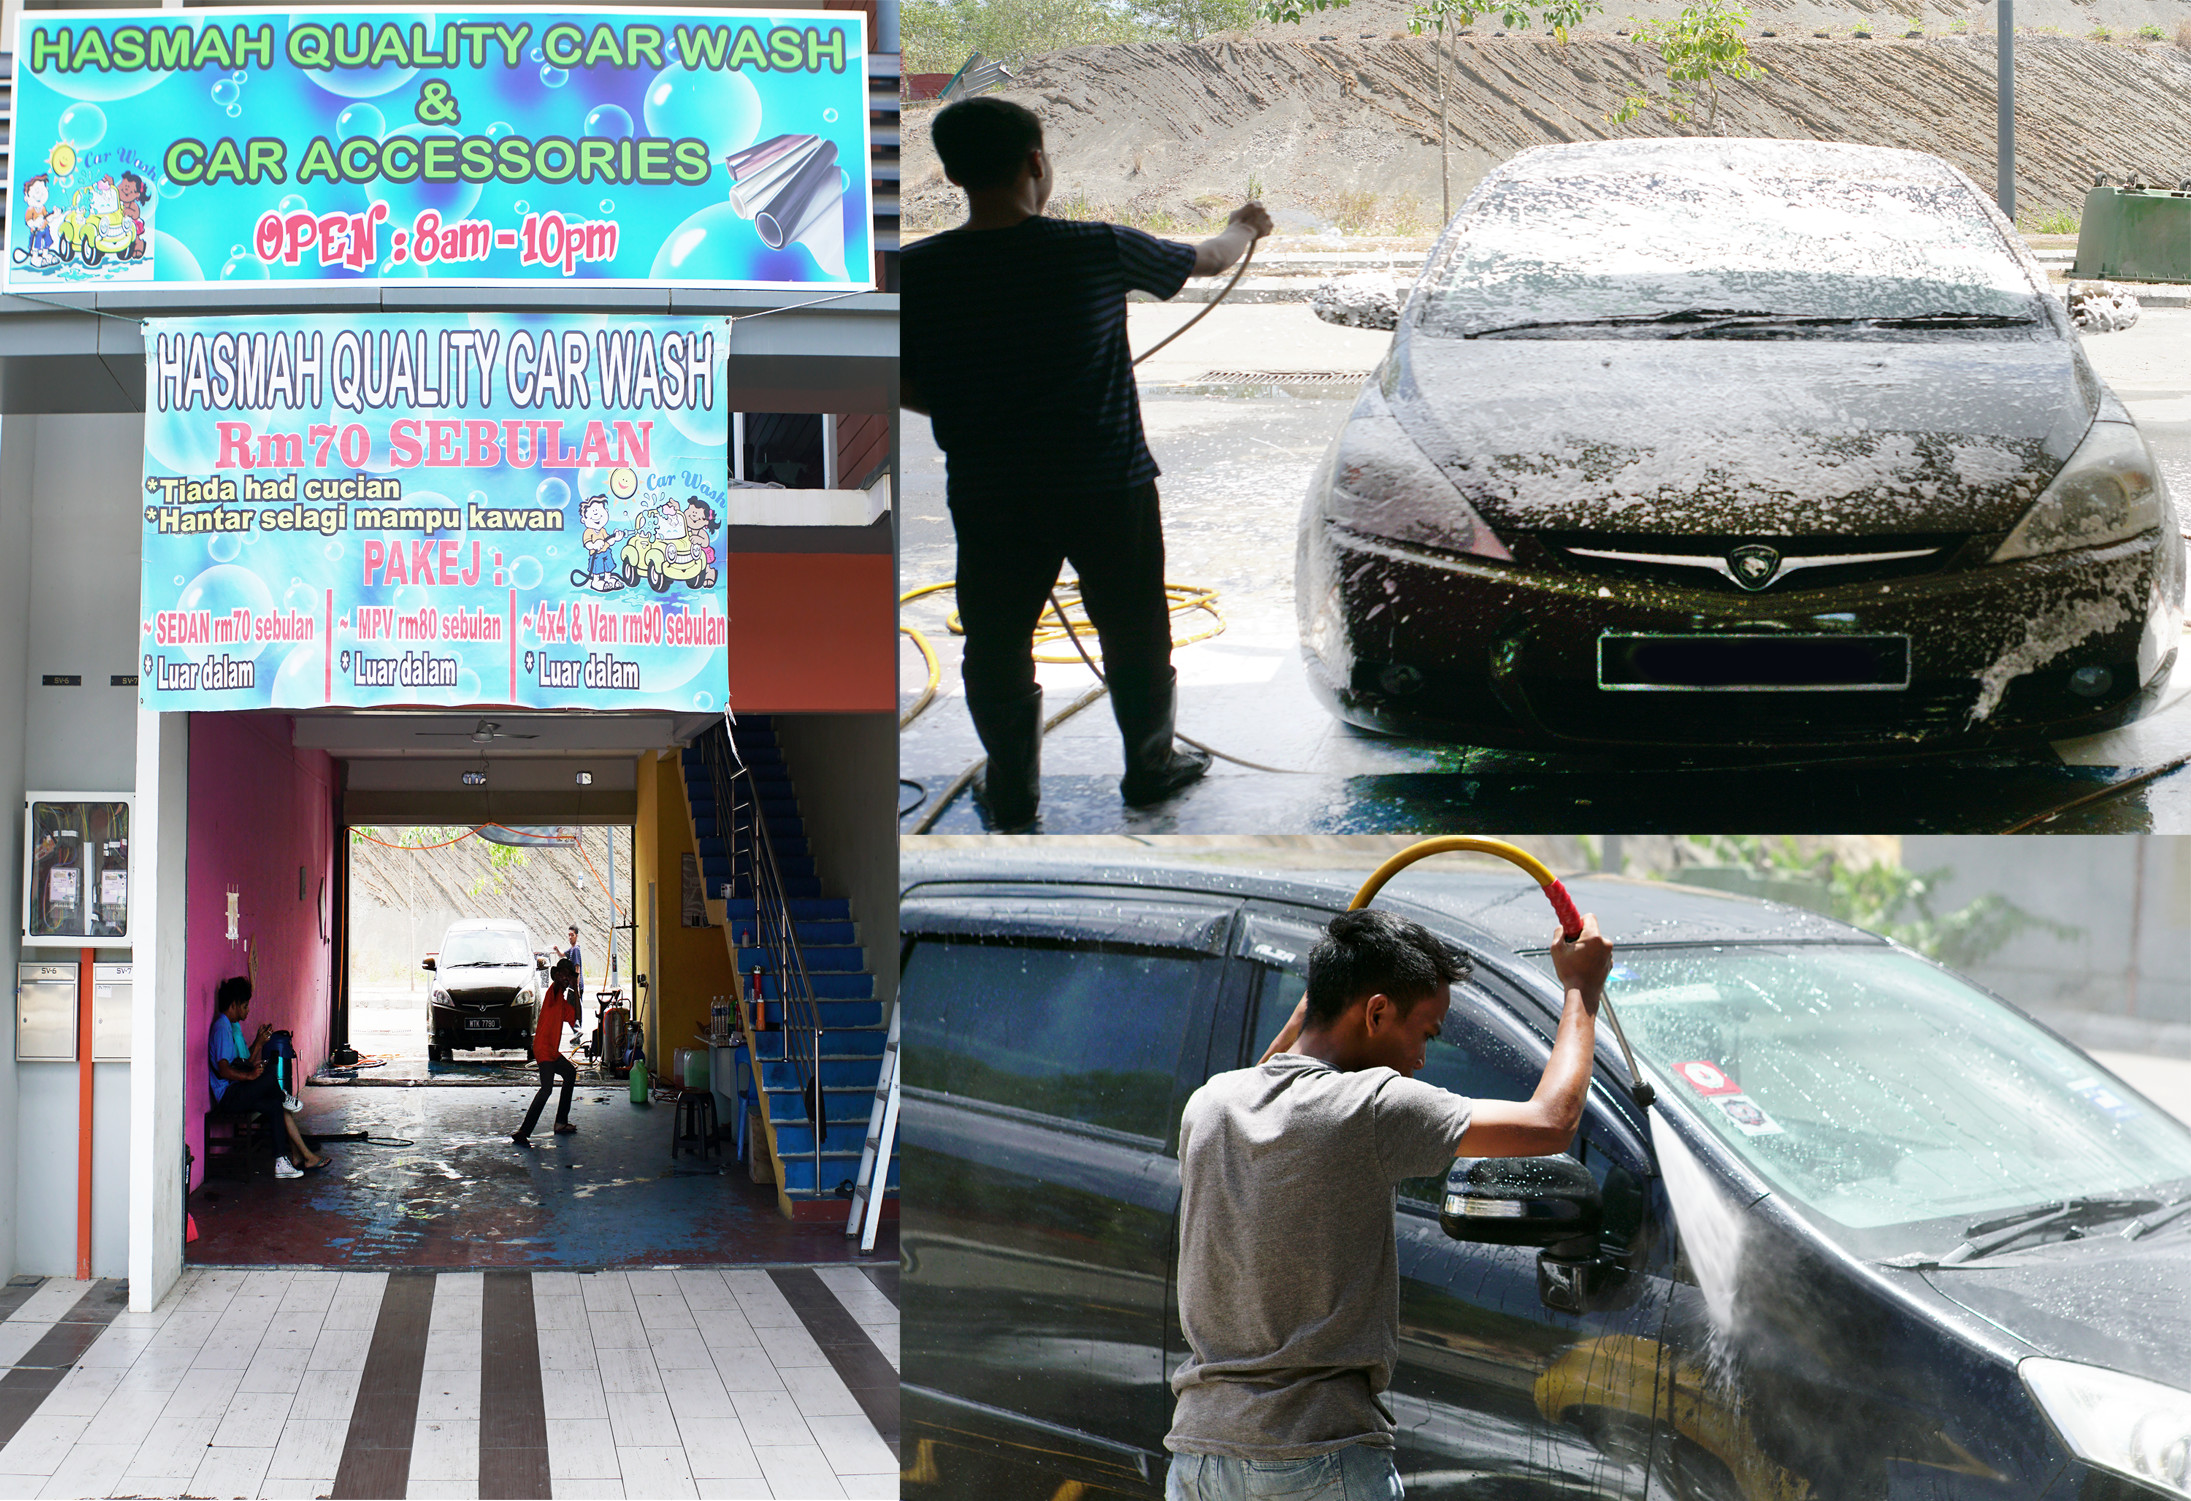 Hasmah Quality Car Wash (UUS1 SV-7)